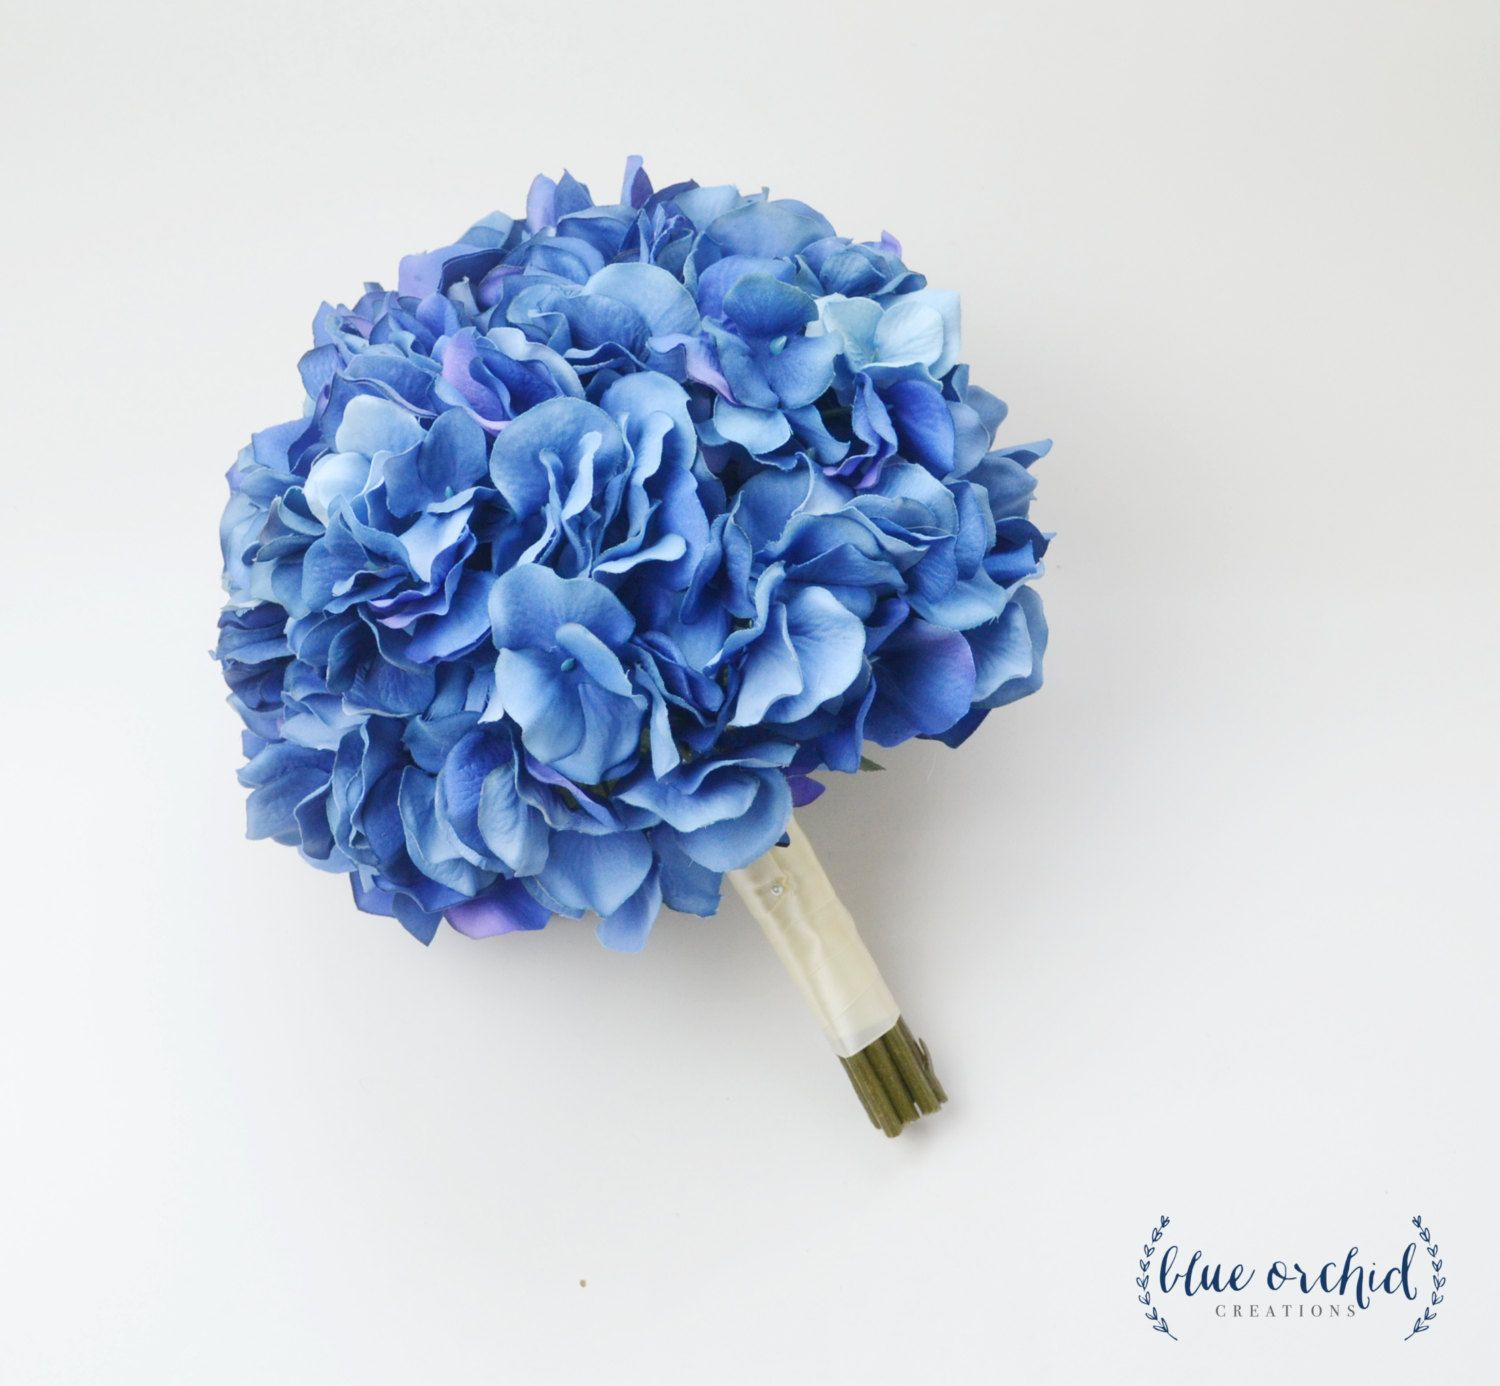 Blue Hydrangea Bouquet Silk Hydrangea Bouquet Bright Blue Etsy Blue Hydrangea Wedding Hydrangeas Wedding Blue Hydrangea Bouquet